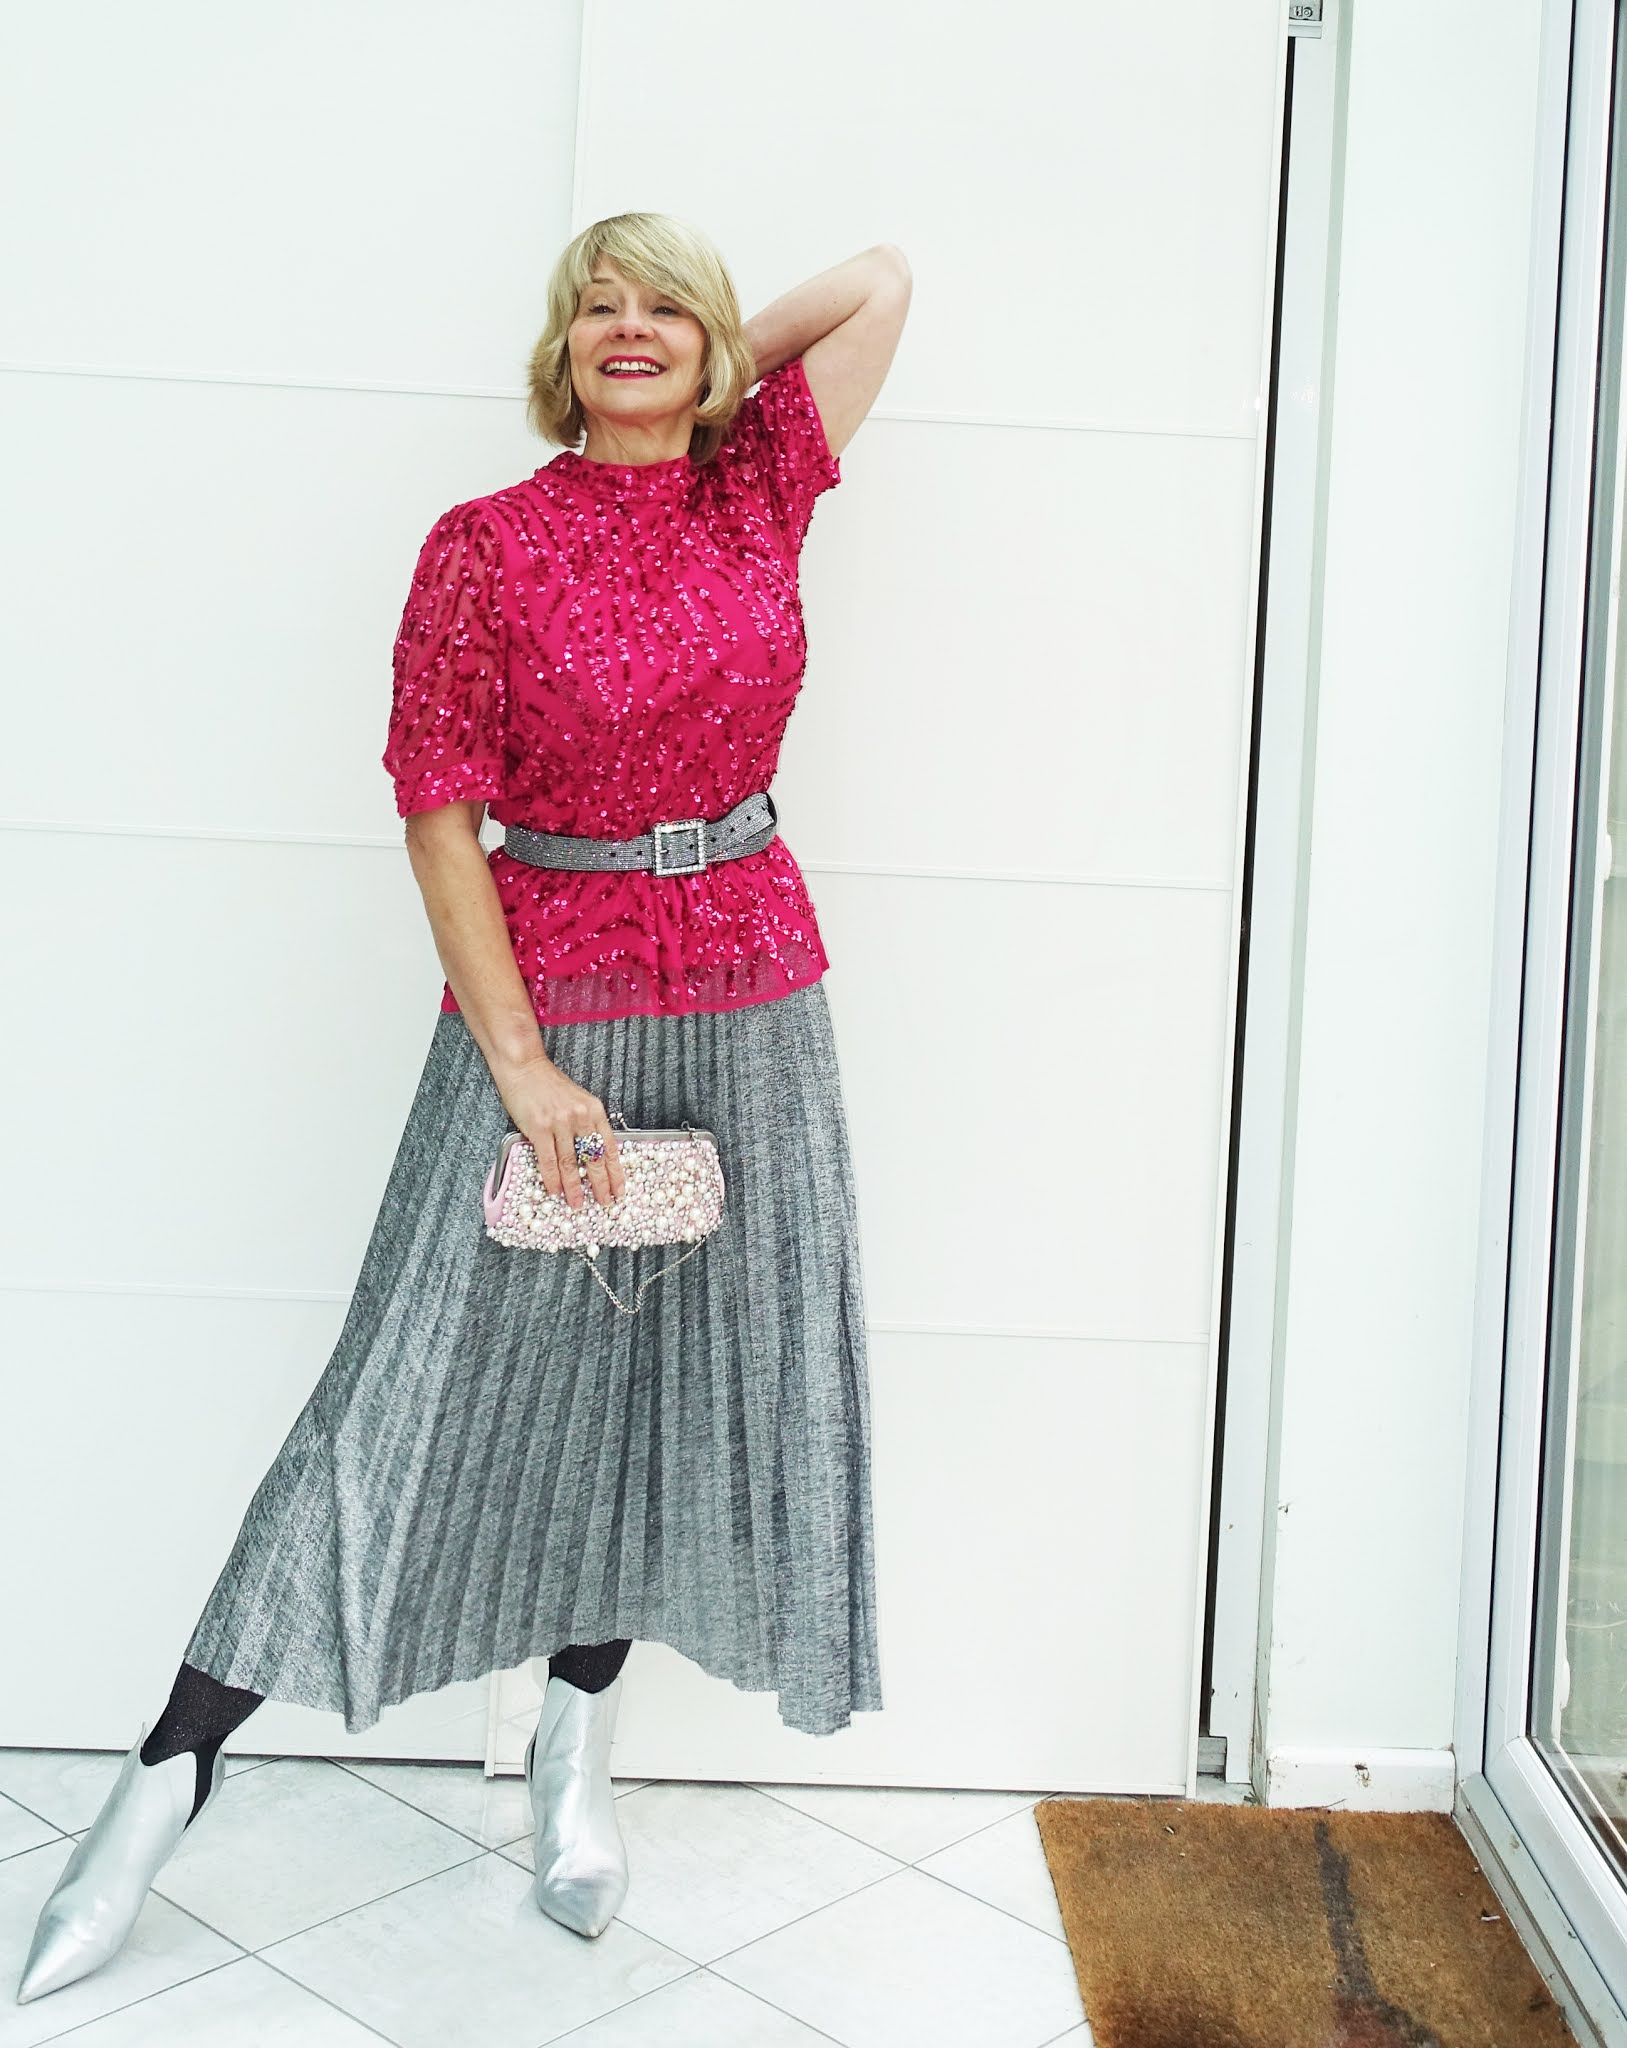 All we want for Christmas in pandemic year is a bit of sparkle and here it is provided by the over-40s bloggers of the Style Not Age challenge. Here Gail Hanlon from Is This Mutton wears a deep pink sequinned tunic from Monsoon with a midi pleated silver skirt and silver boots